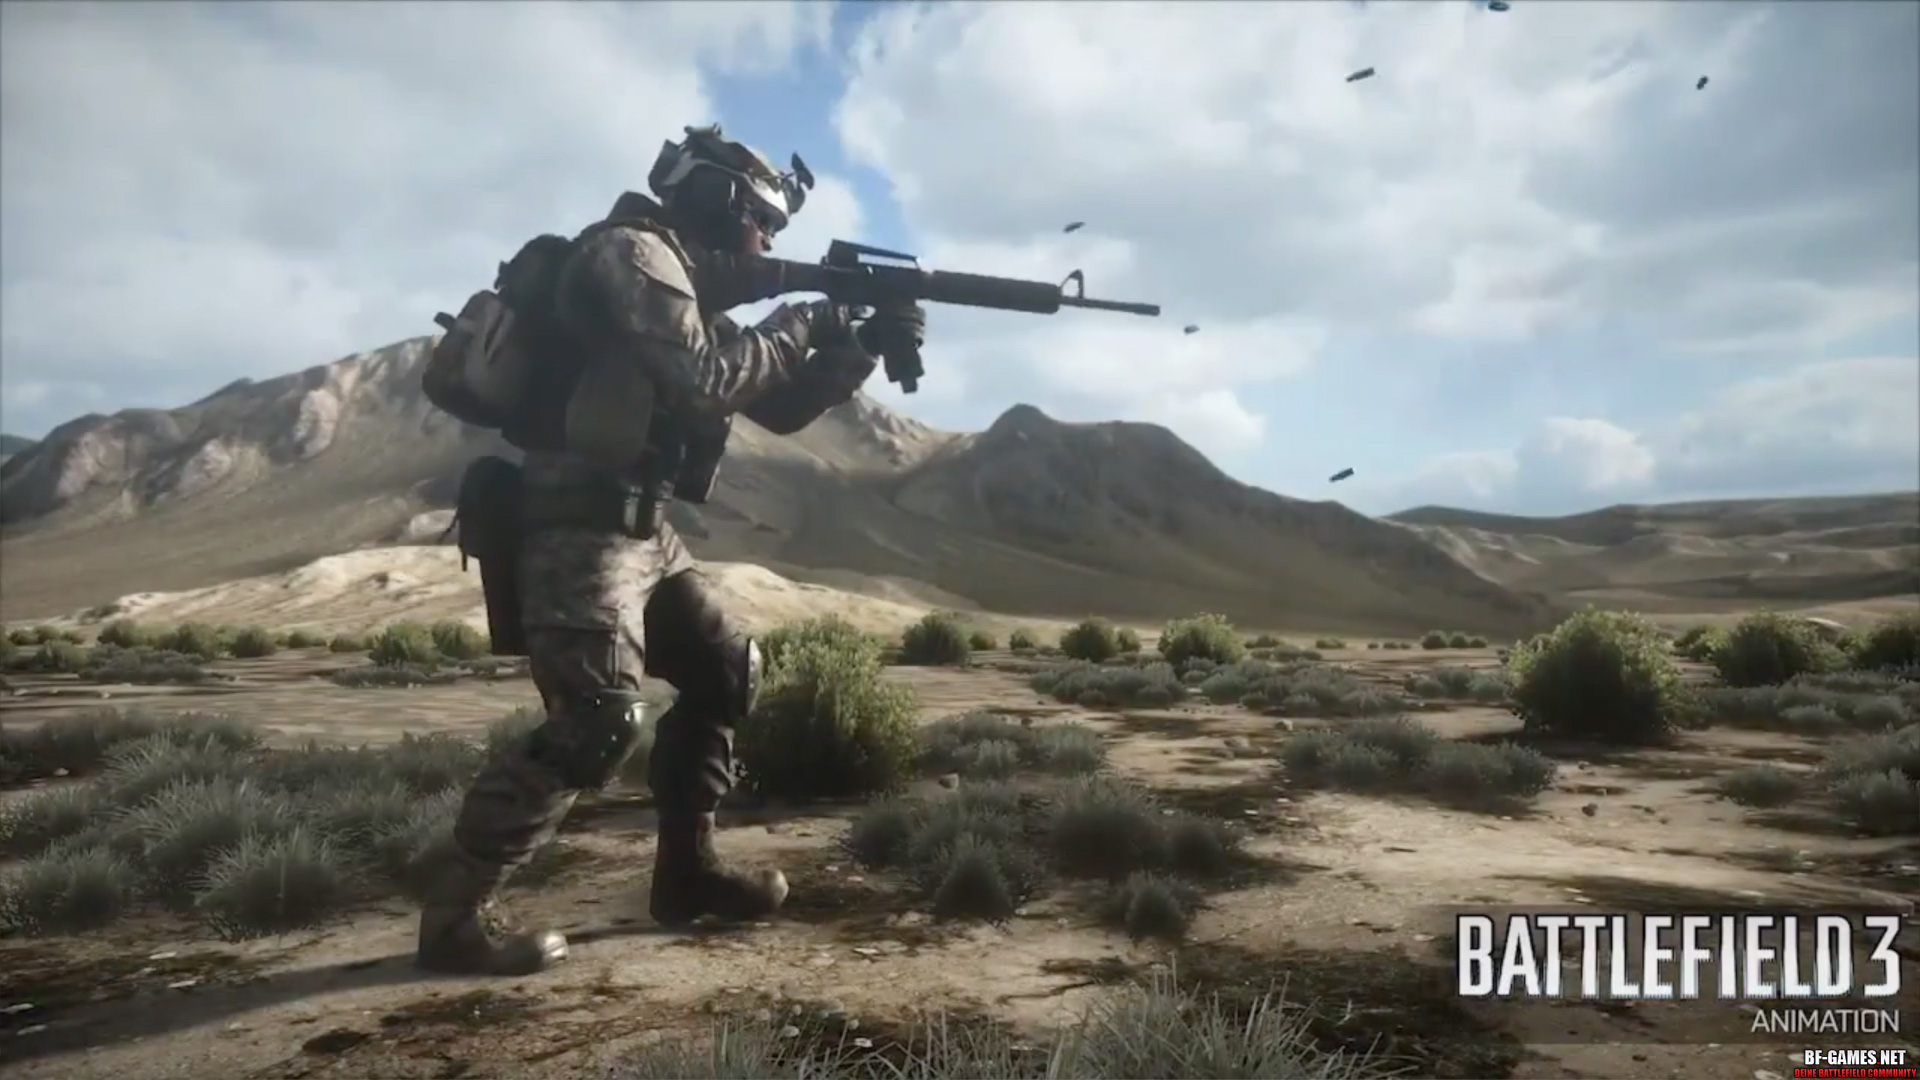 Battlefield 3 Animation